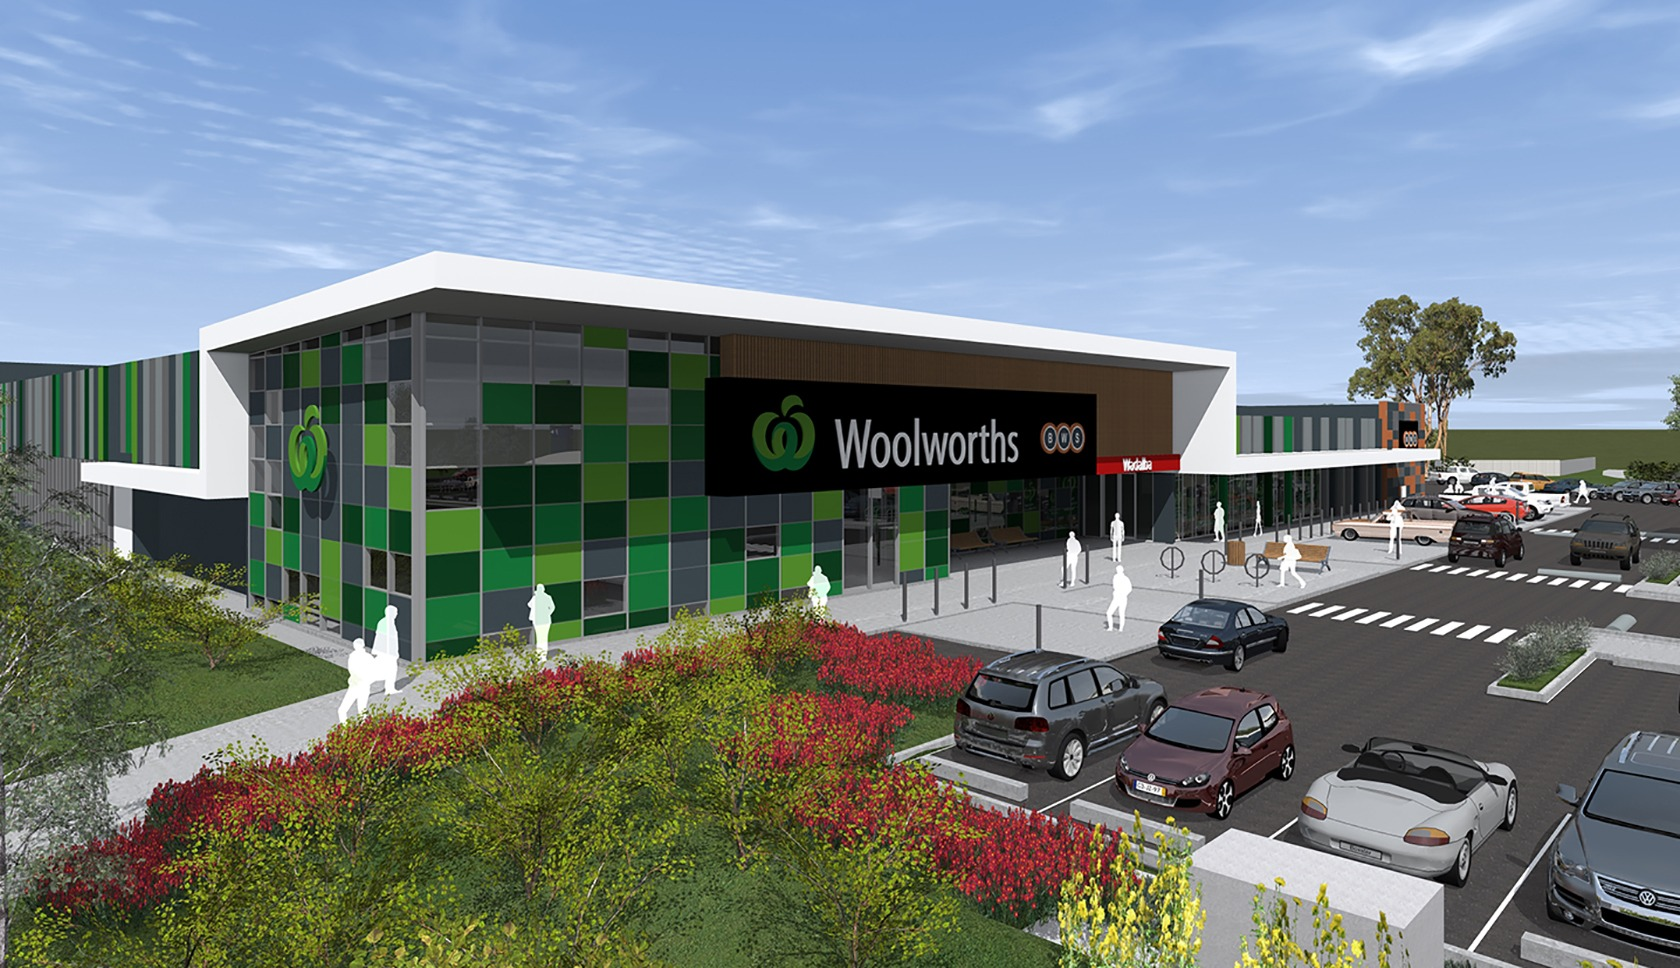 Woolworths Wadalba drawing of the retail outlets building from the front entrance